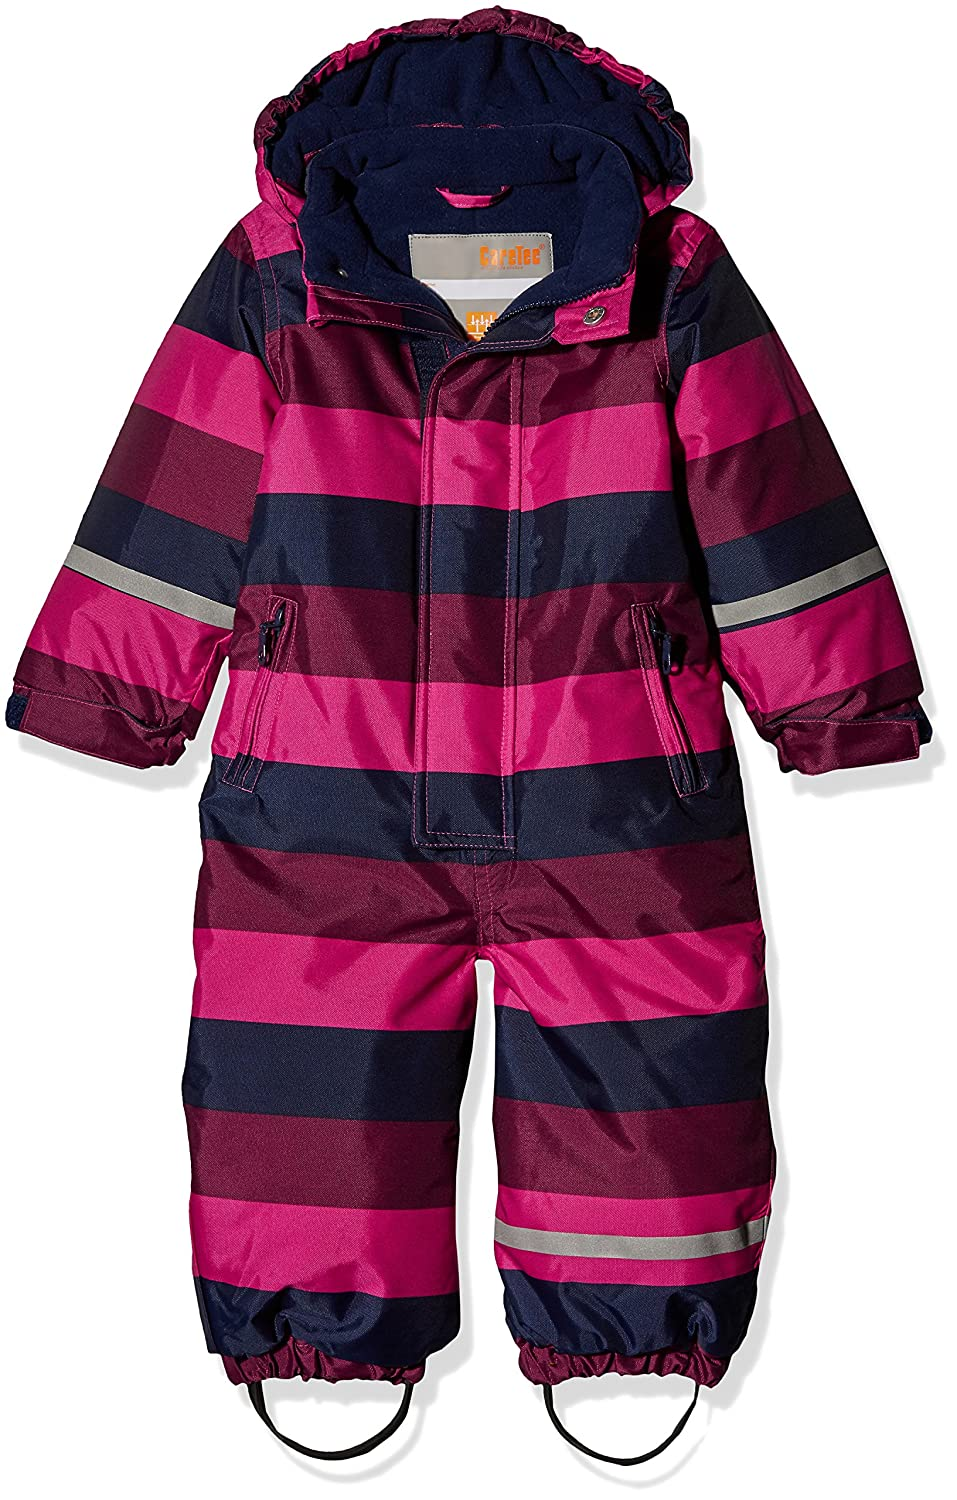 CareTec Kids Snowsuit 550035